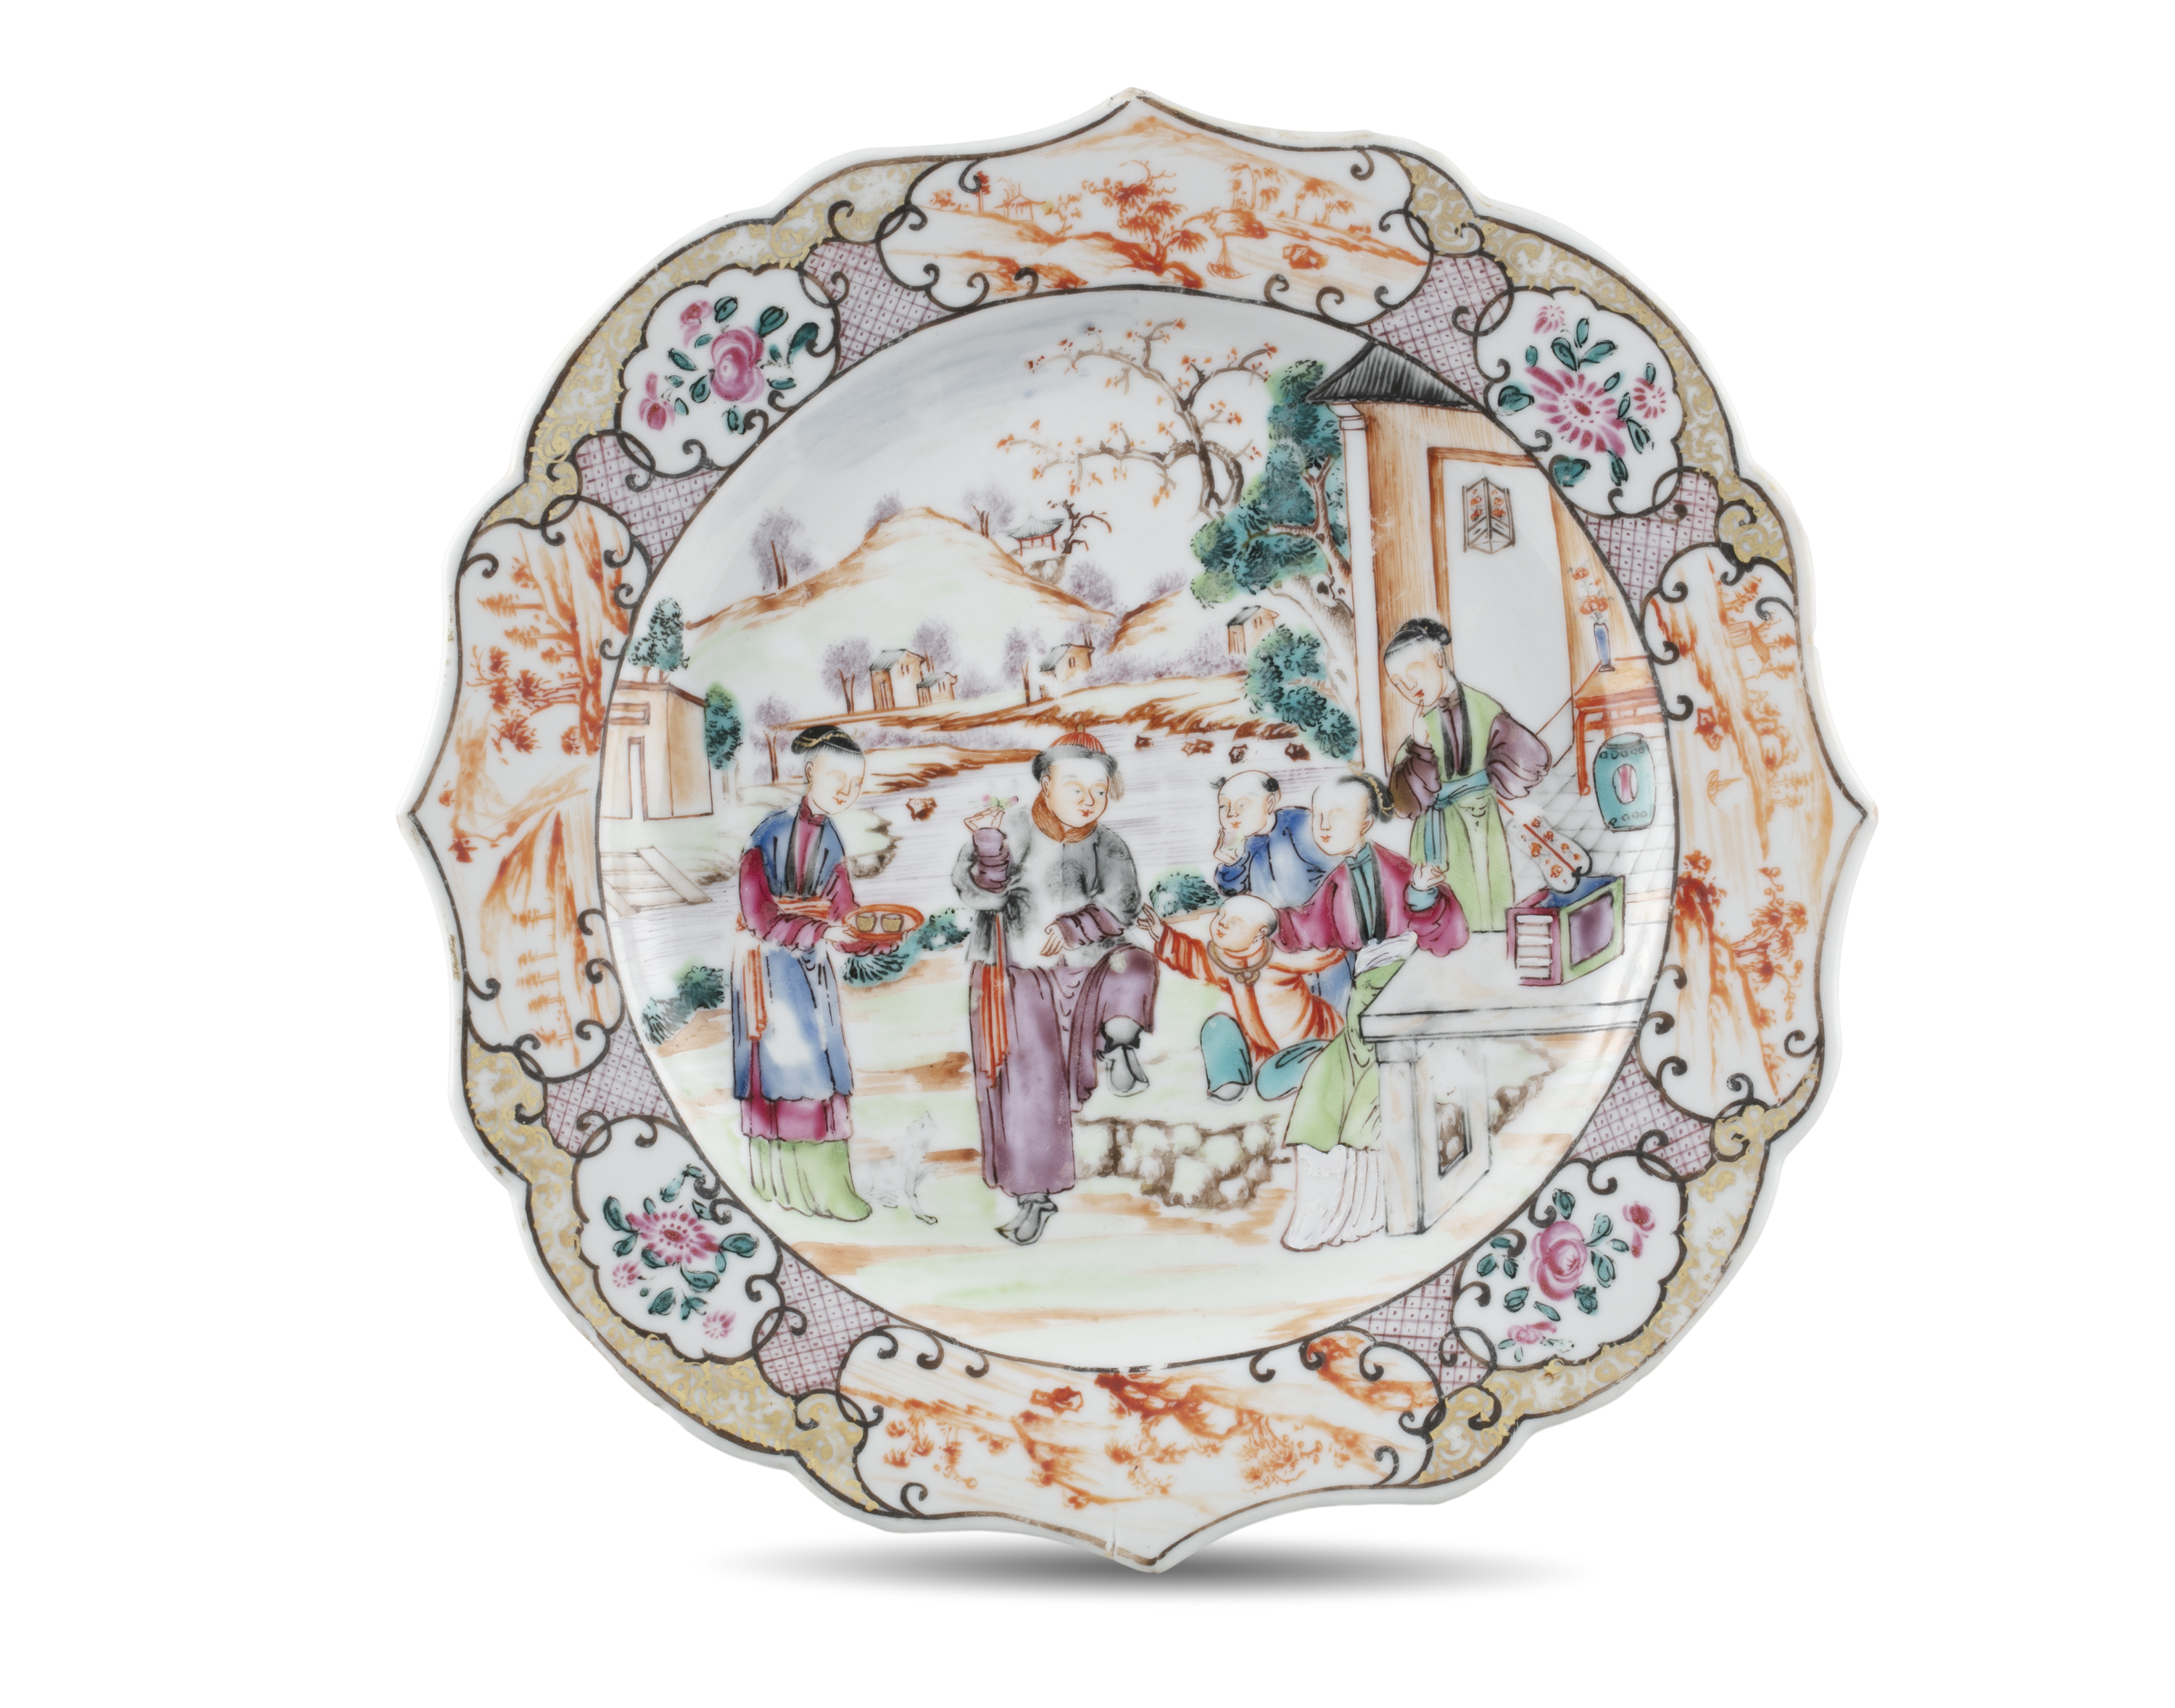 A LOBED CHINESE EXPORT 'MANDARIN' PORCELAIN PLATE China, Qing Dynasty, 18th century Richly adorned - Image 2 of 11